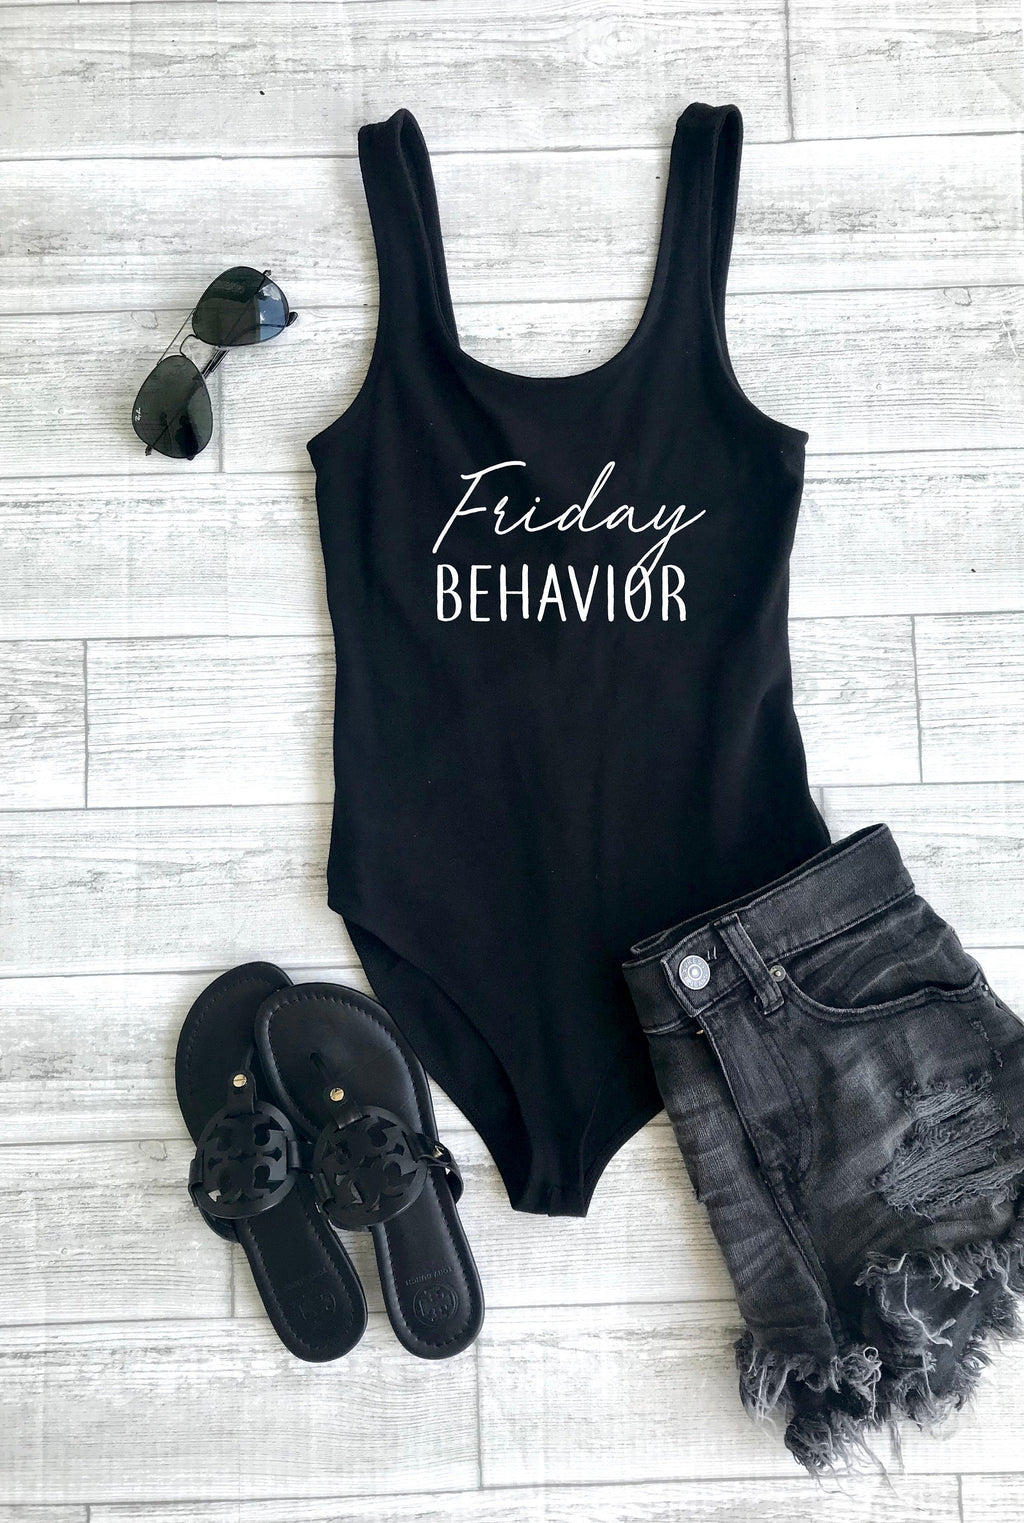 Women's bodysuit, Cute women's bodysuit, Friday behavior, Cute women's outfit, cute summer outfit, going out outfit, club outfit, cute tops